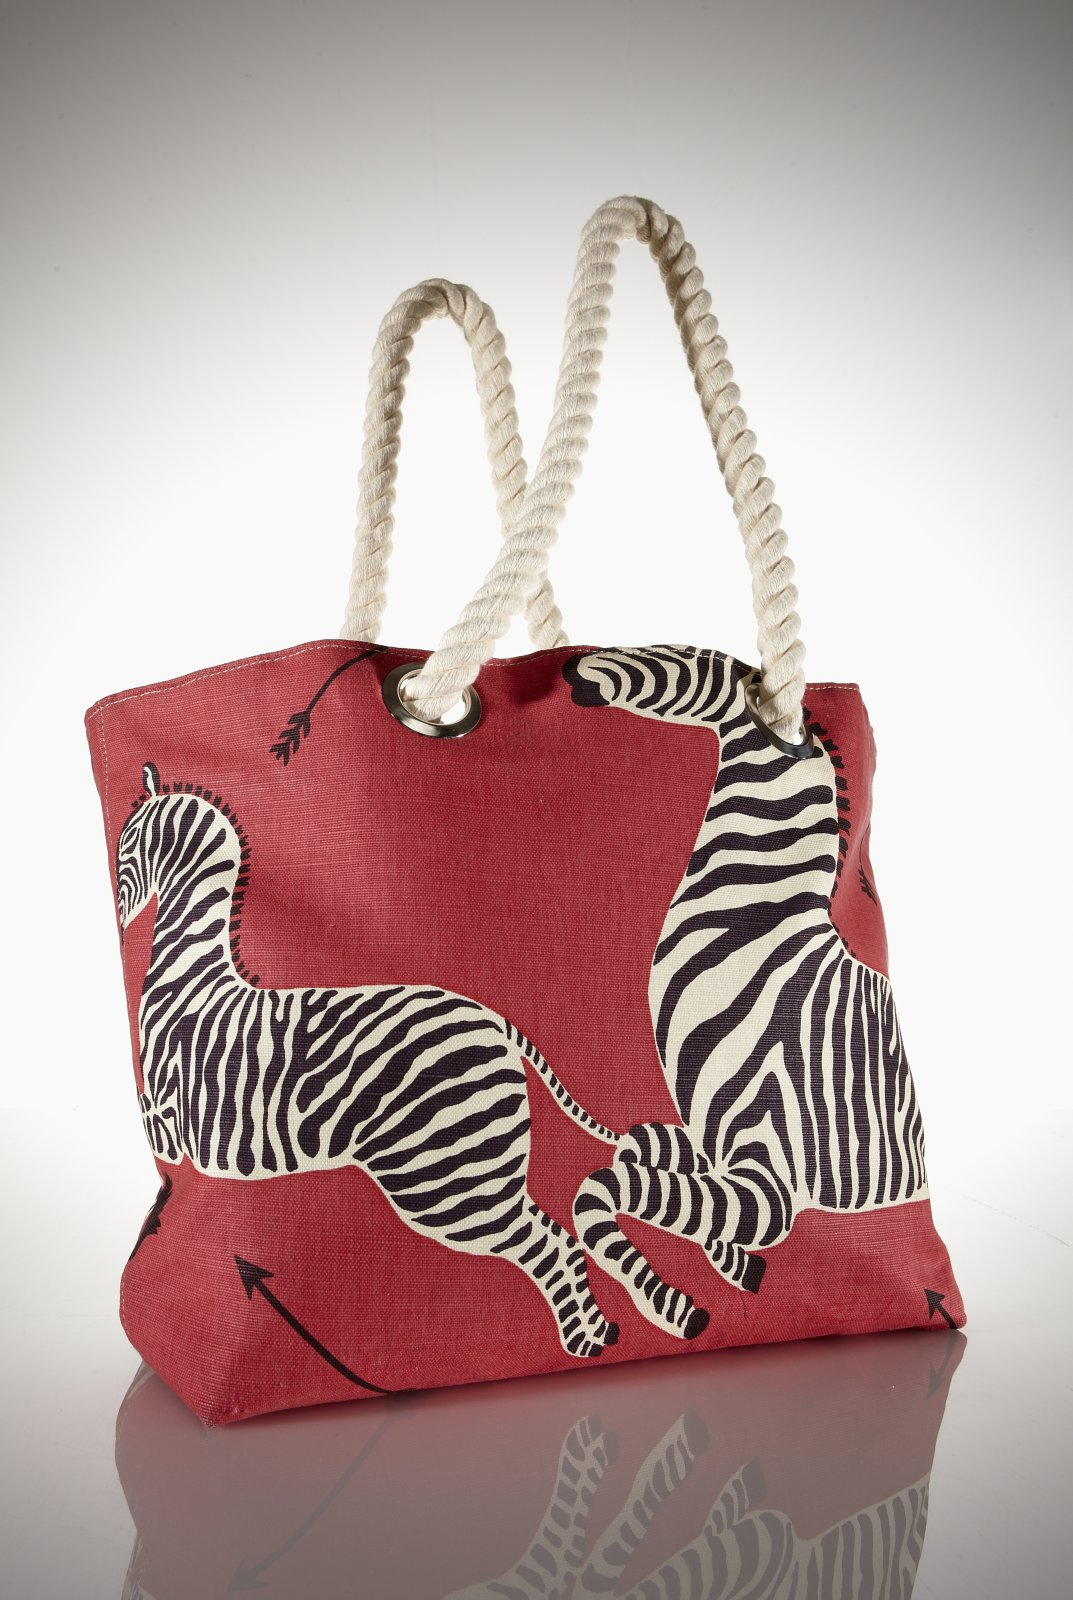 What's Black and White and Red All Over? A Scalamandre Zebra Tote Bag